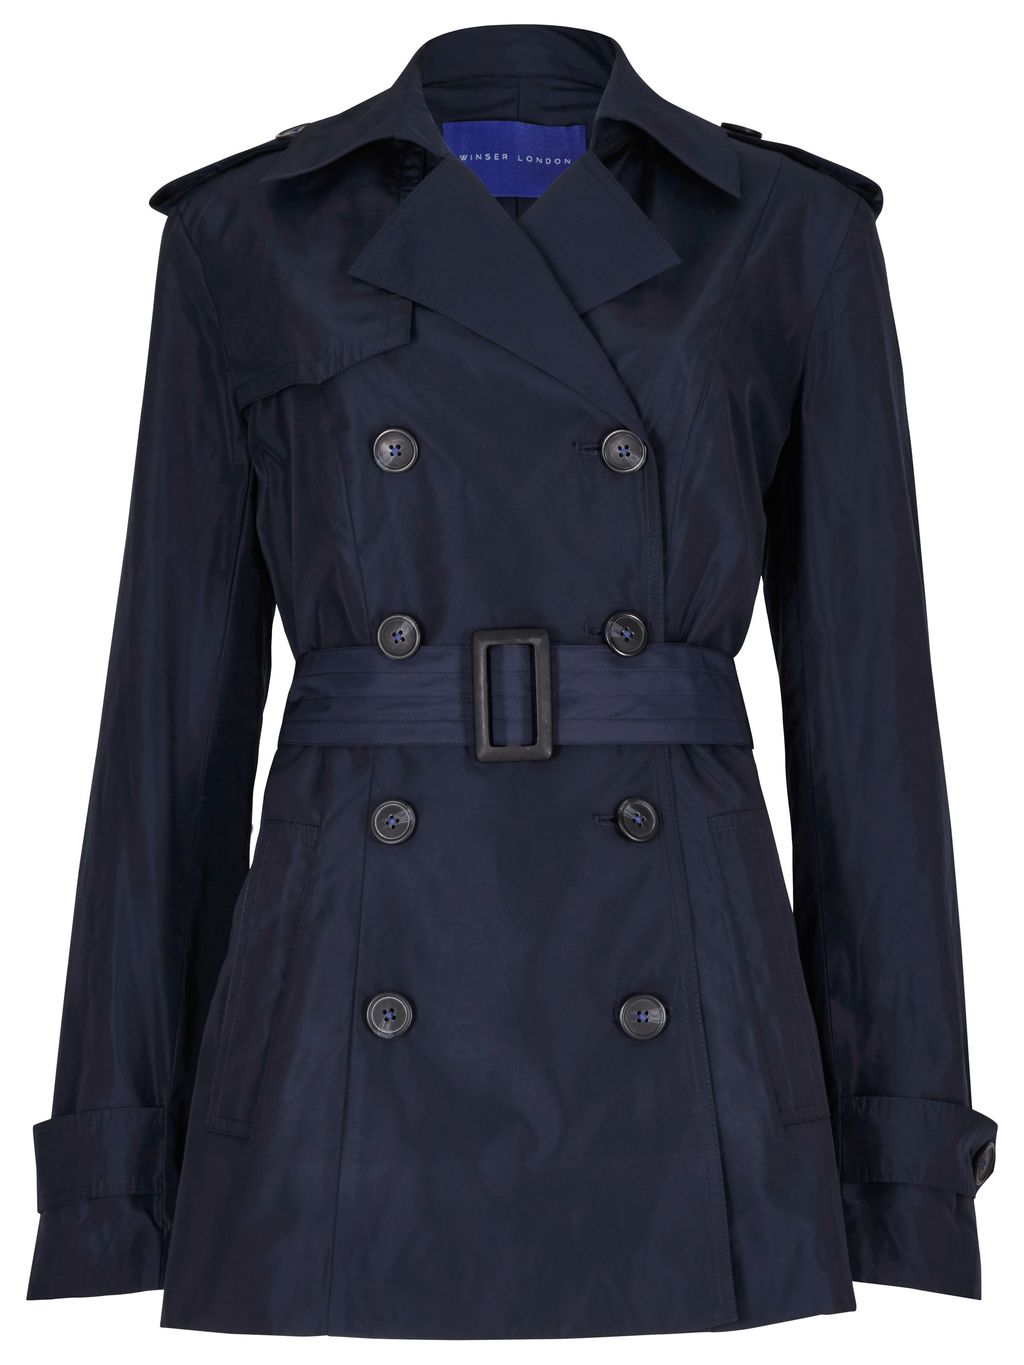 Winser Short Trench, Navy - pattern: plain; length: standard; style: trench coat; fit: slim fit; collar: standard lapel/rever collar; predominant colour: navy; occasions: casual; fibres: polyester/polyamide - 100%; waist detail: belted waist/tie at waist/drawstring; sleeve length: long sleeve; sleeve style: standard; collar break: medium; pattern type: fabric; texture group: woven bulky/heavy; season: s/s 2016; wardrobe: basic